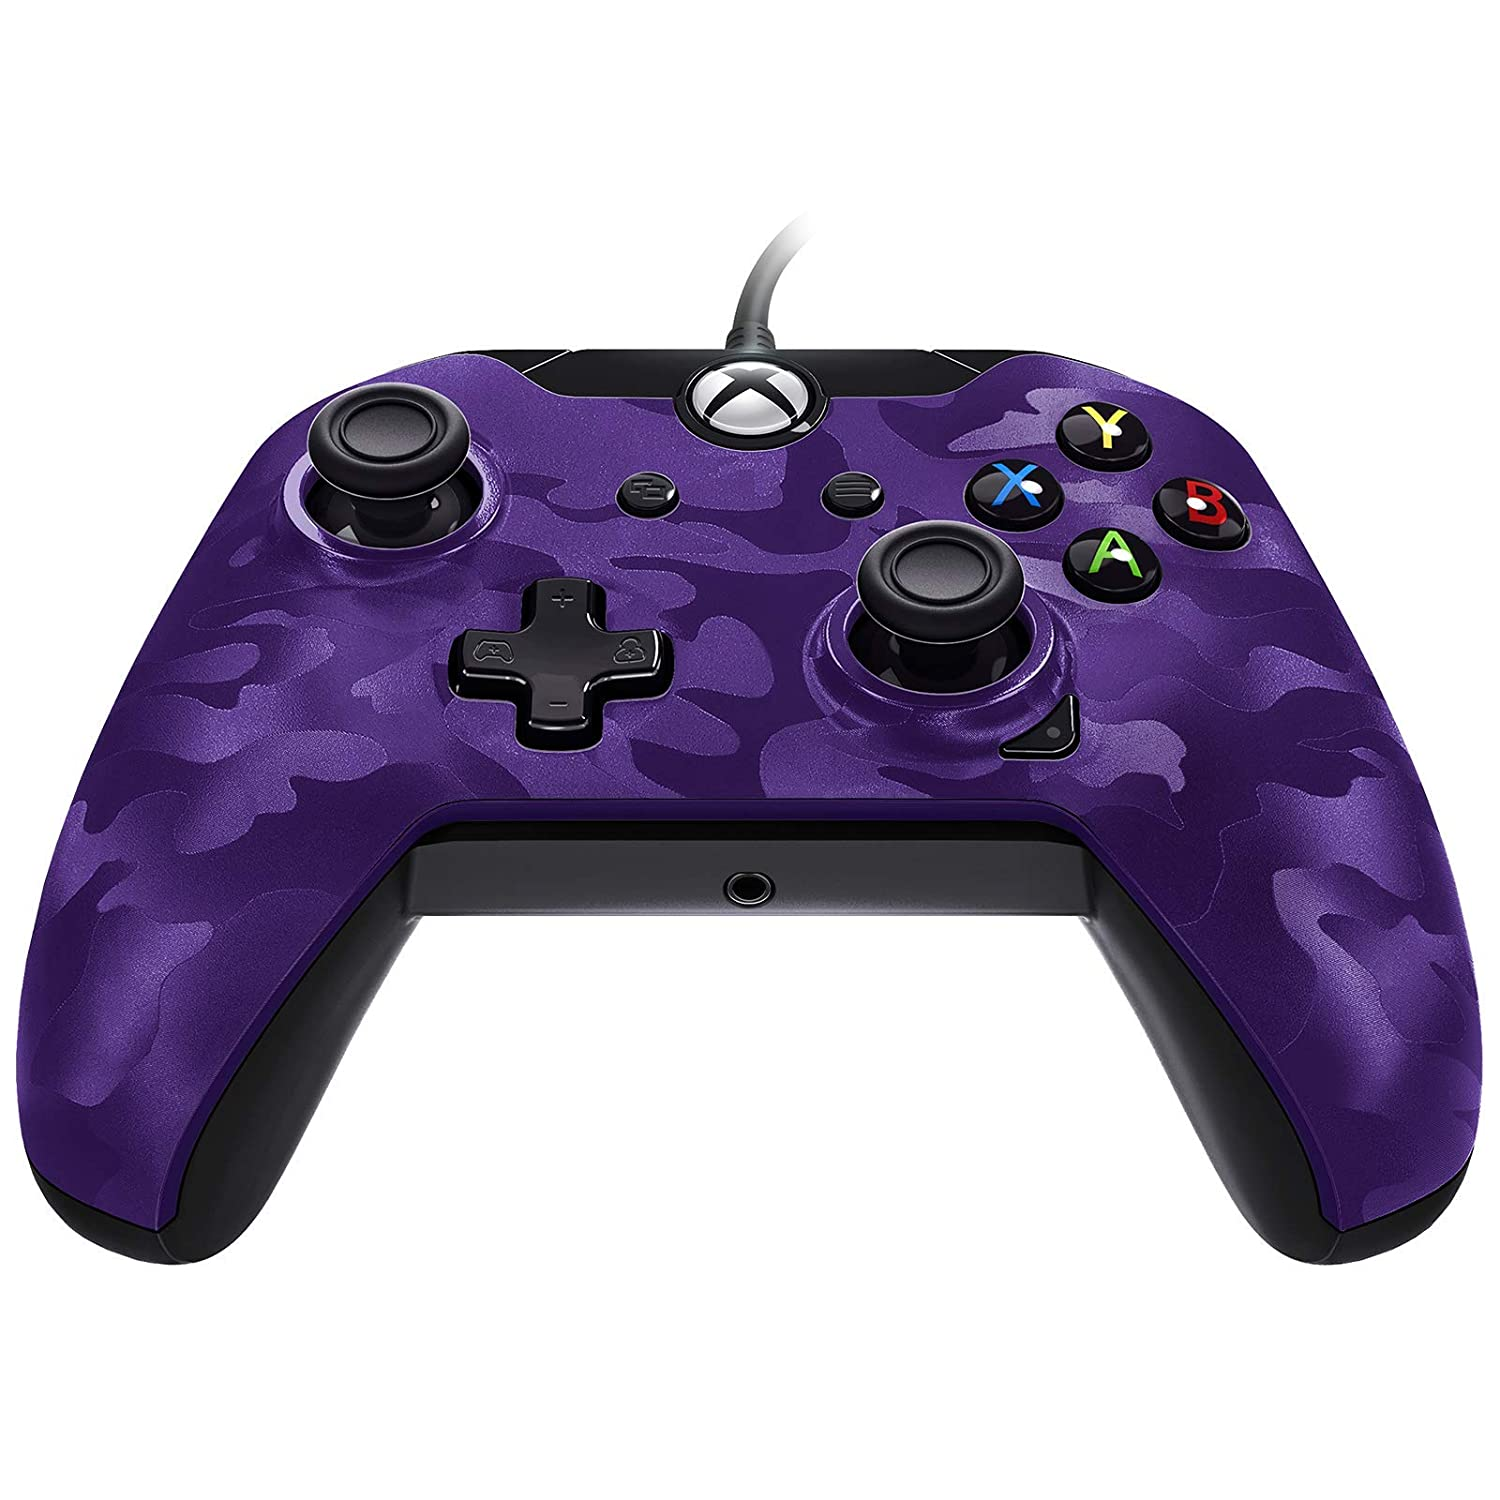 PDP 048-082-NA-CM05 Stealth Series Wired Controller for Xbox One, Xbox One X and Xbox One S 048-082-NA-CM05, Purple Camo